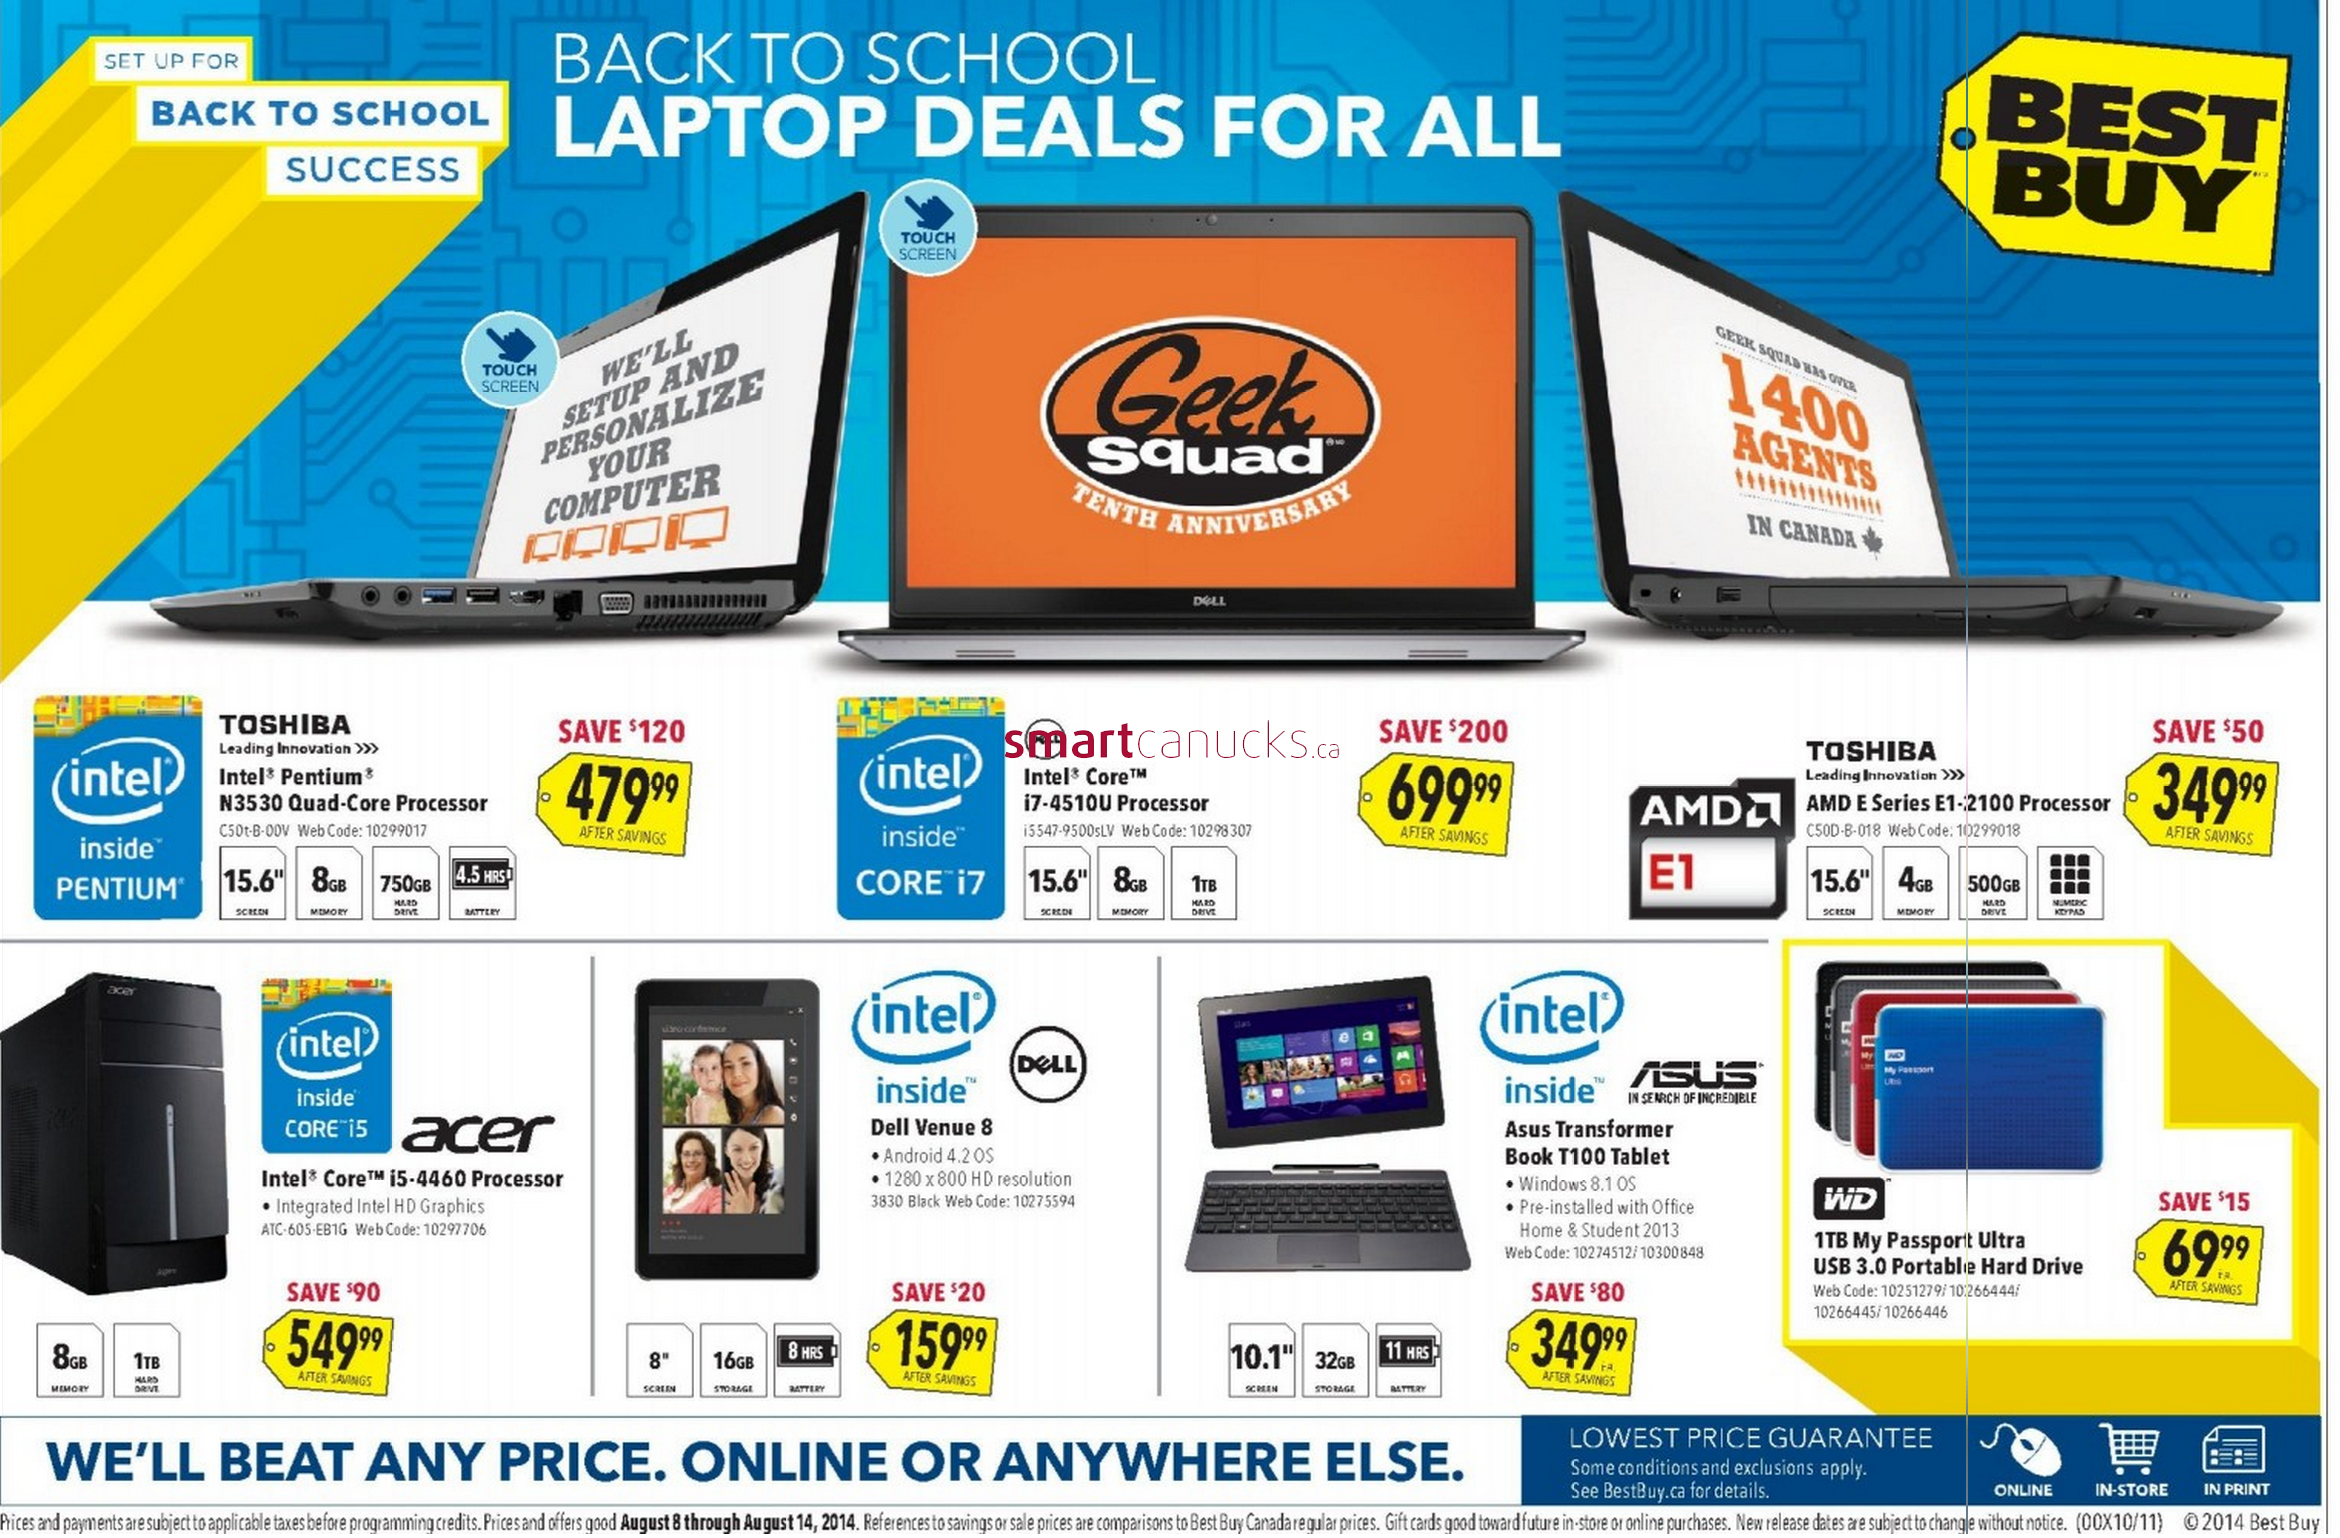 Best buy canada flyer august 8 to 14 best buy canada flyer august 8 to 14 keyboard keysfo Image collections